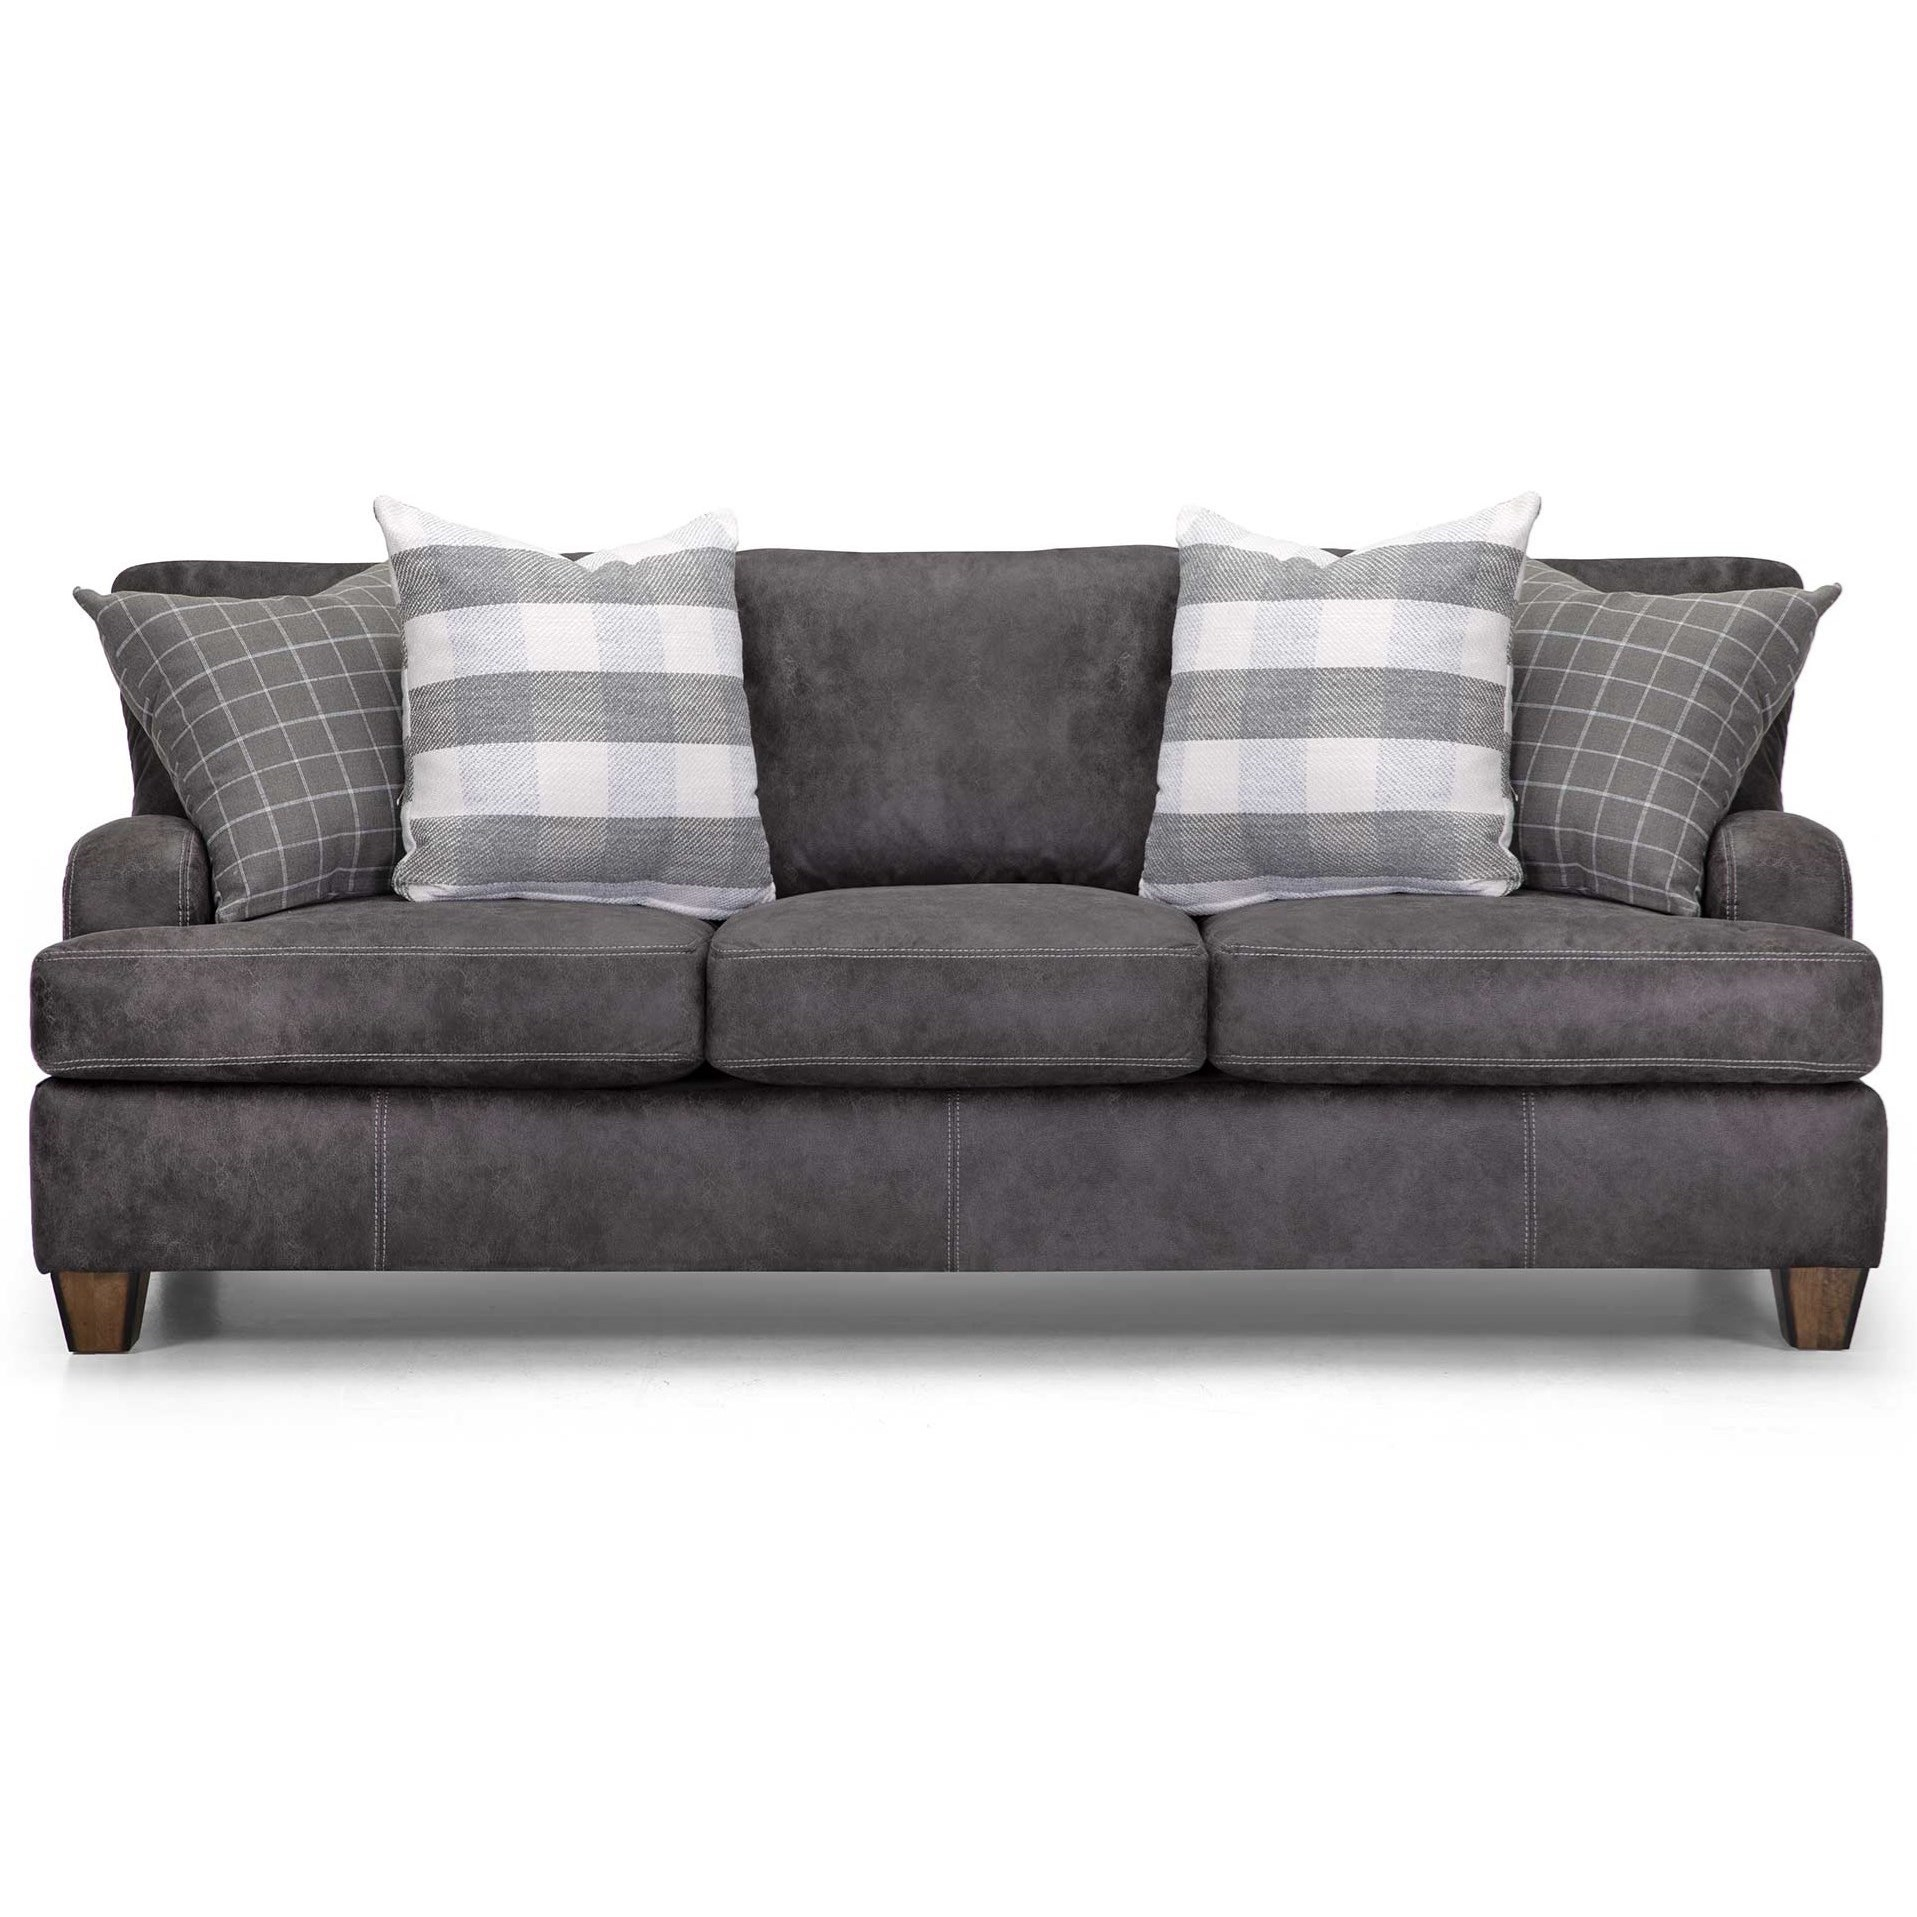 993 Sofa by Franklin at Wilcox Furniture